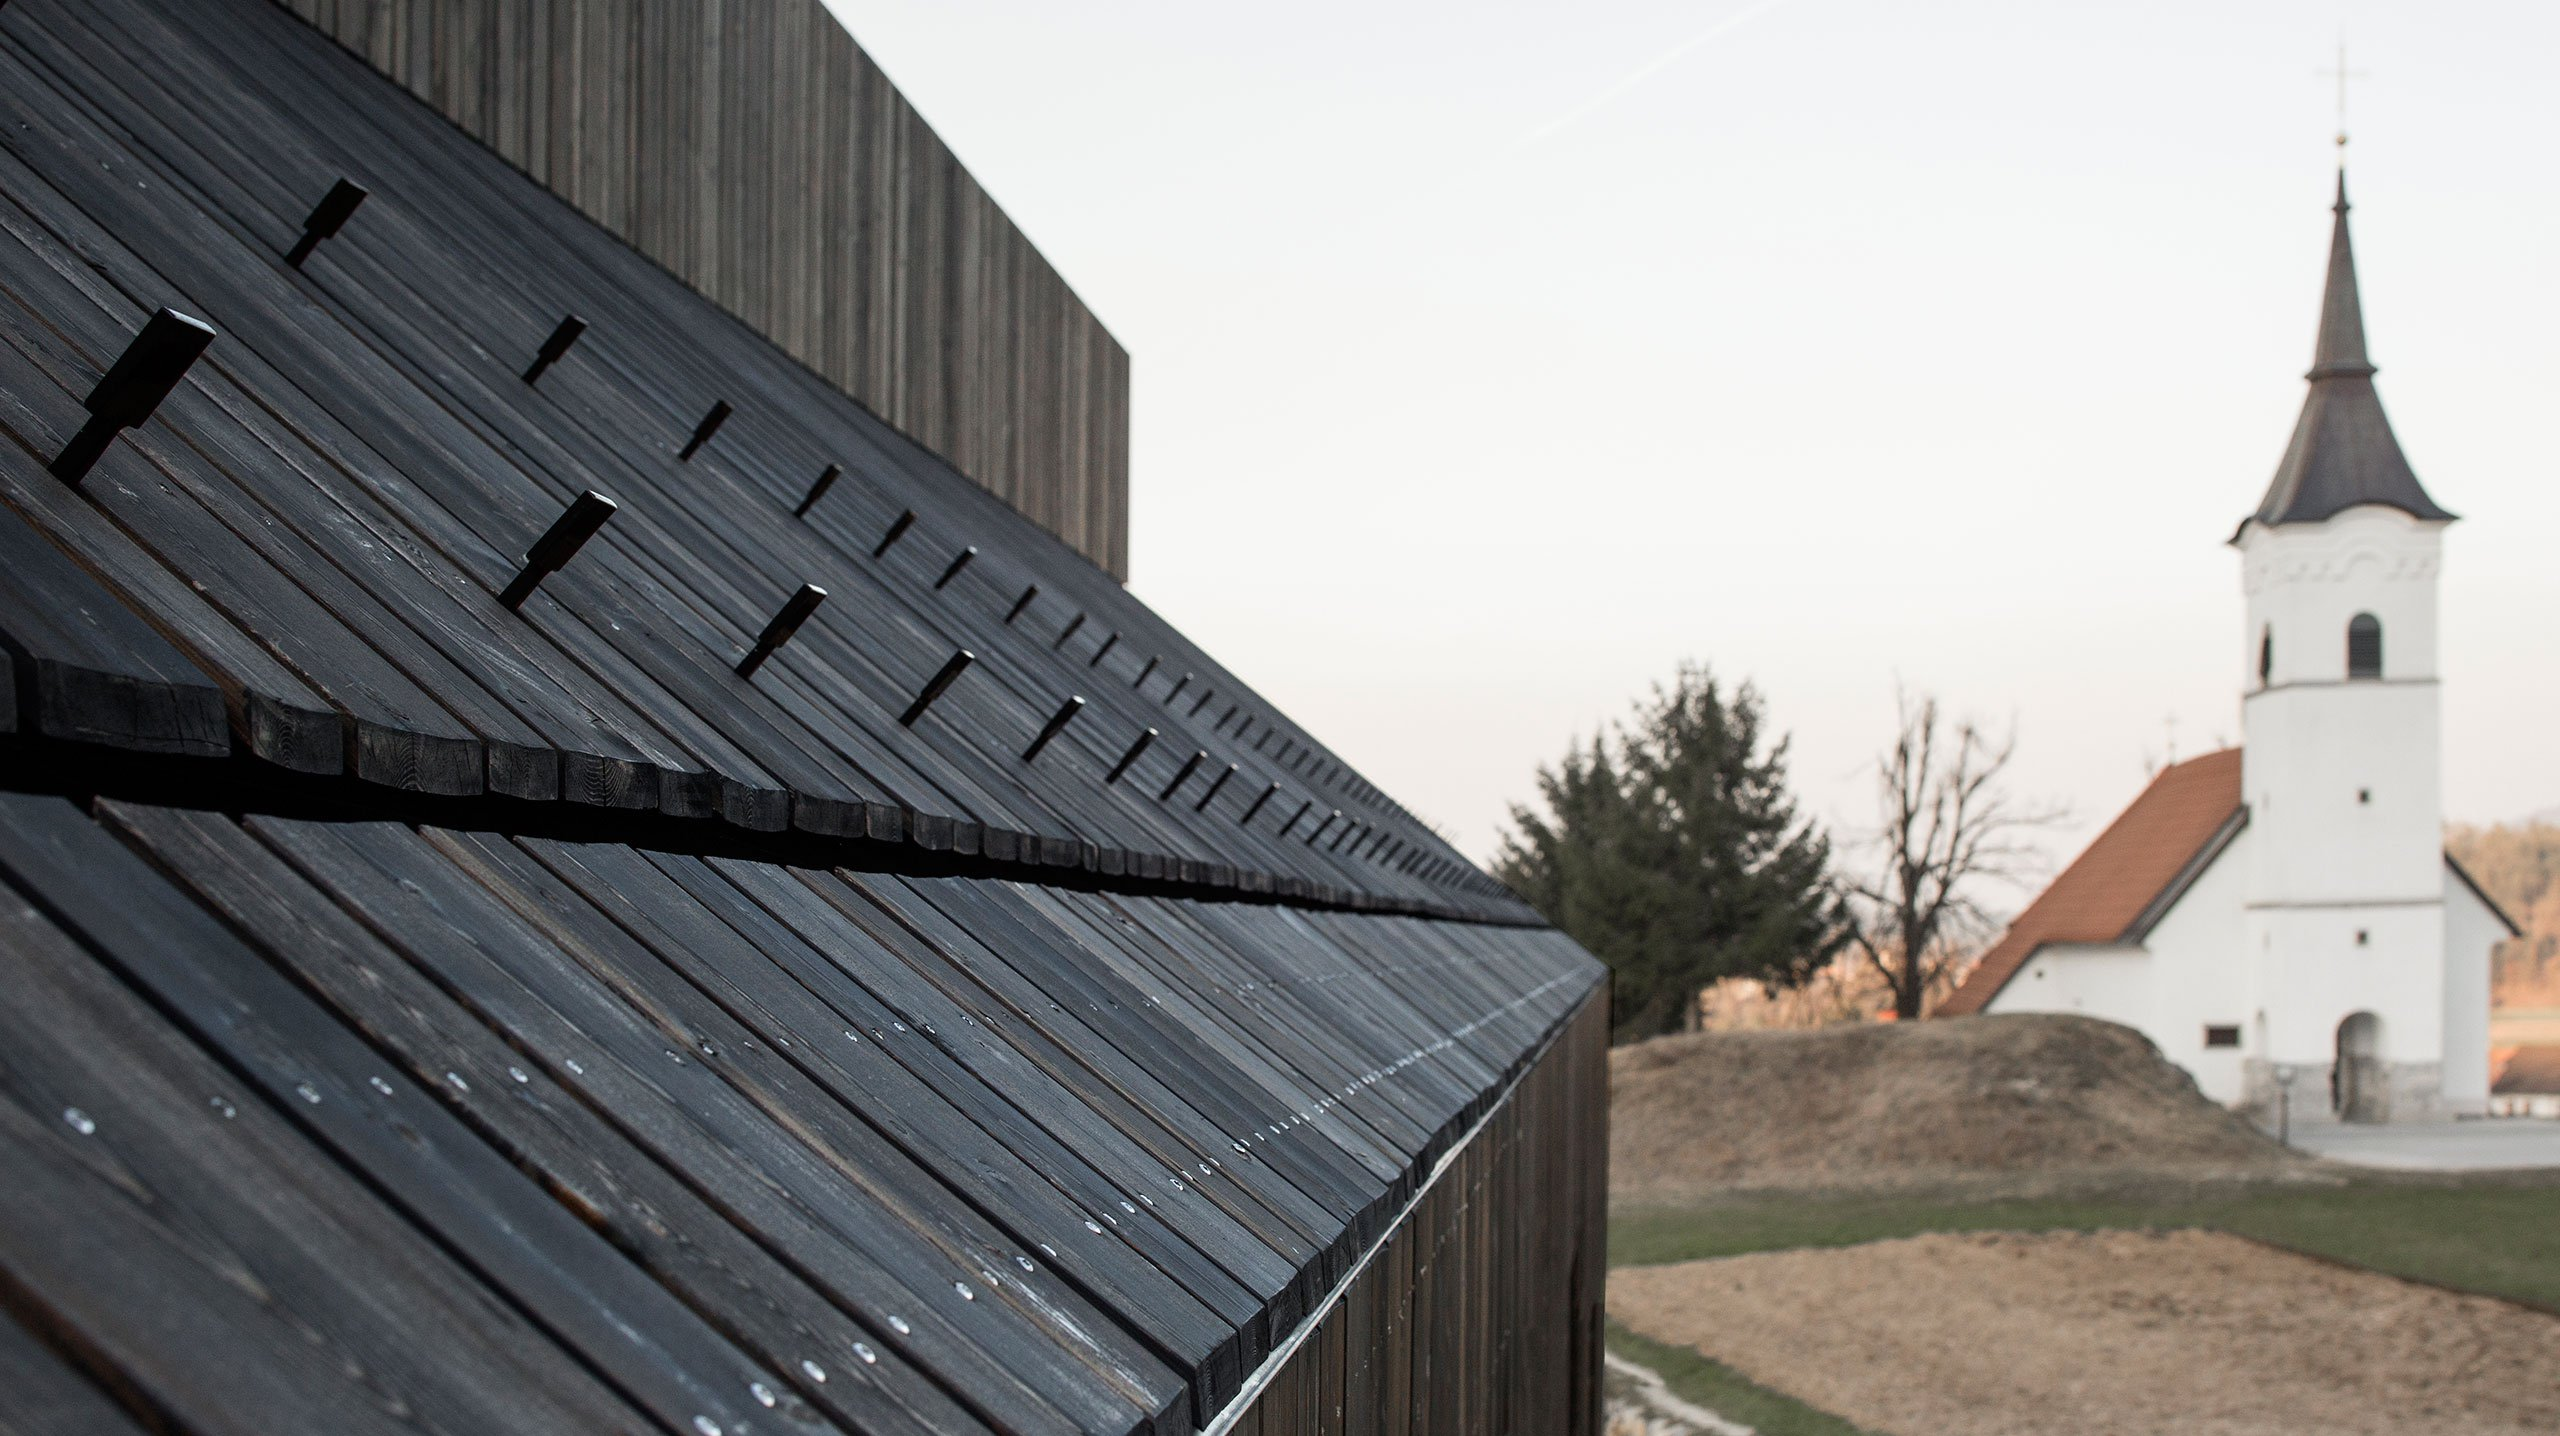 p4_chimney_house_logatec_slovenia_dekleva_gregoric_architects_yatzer